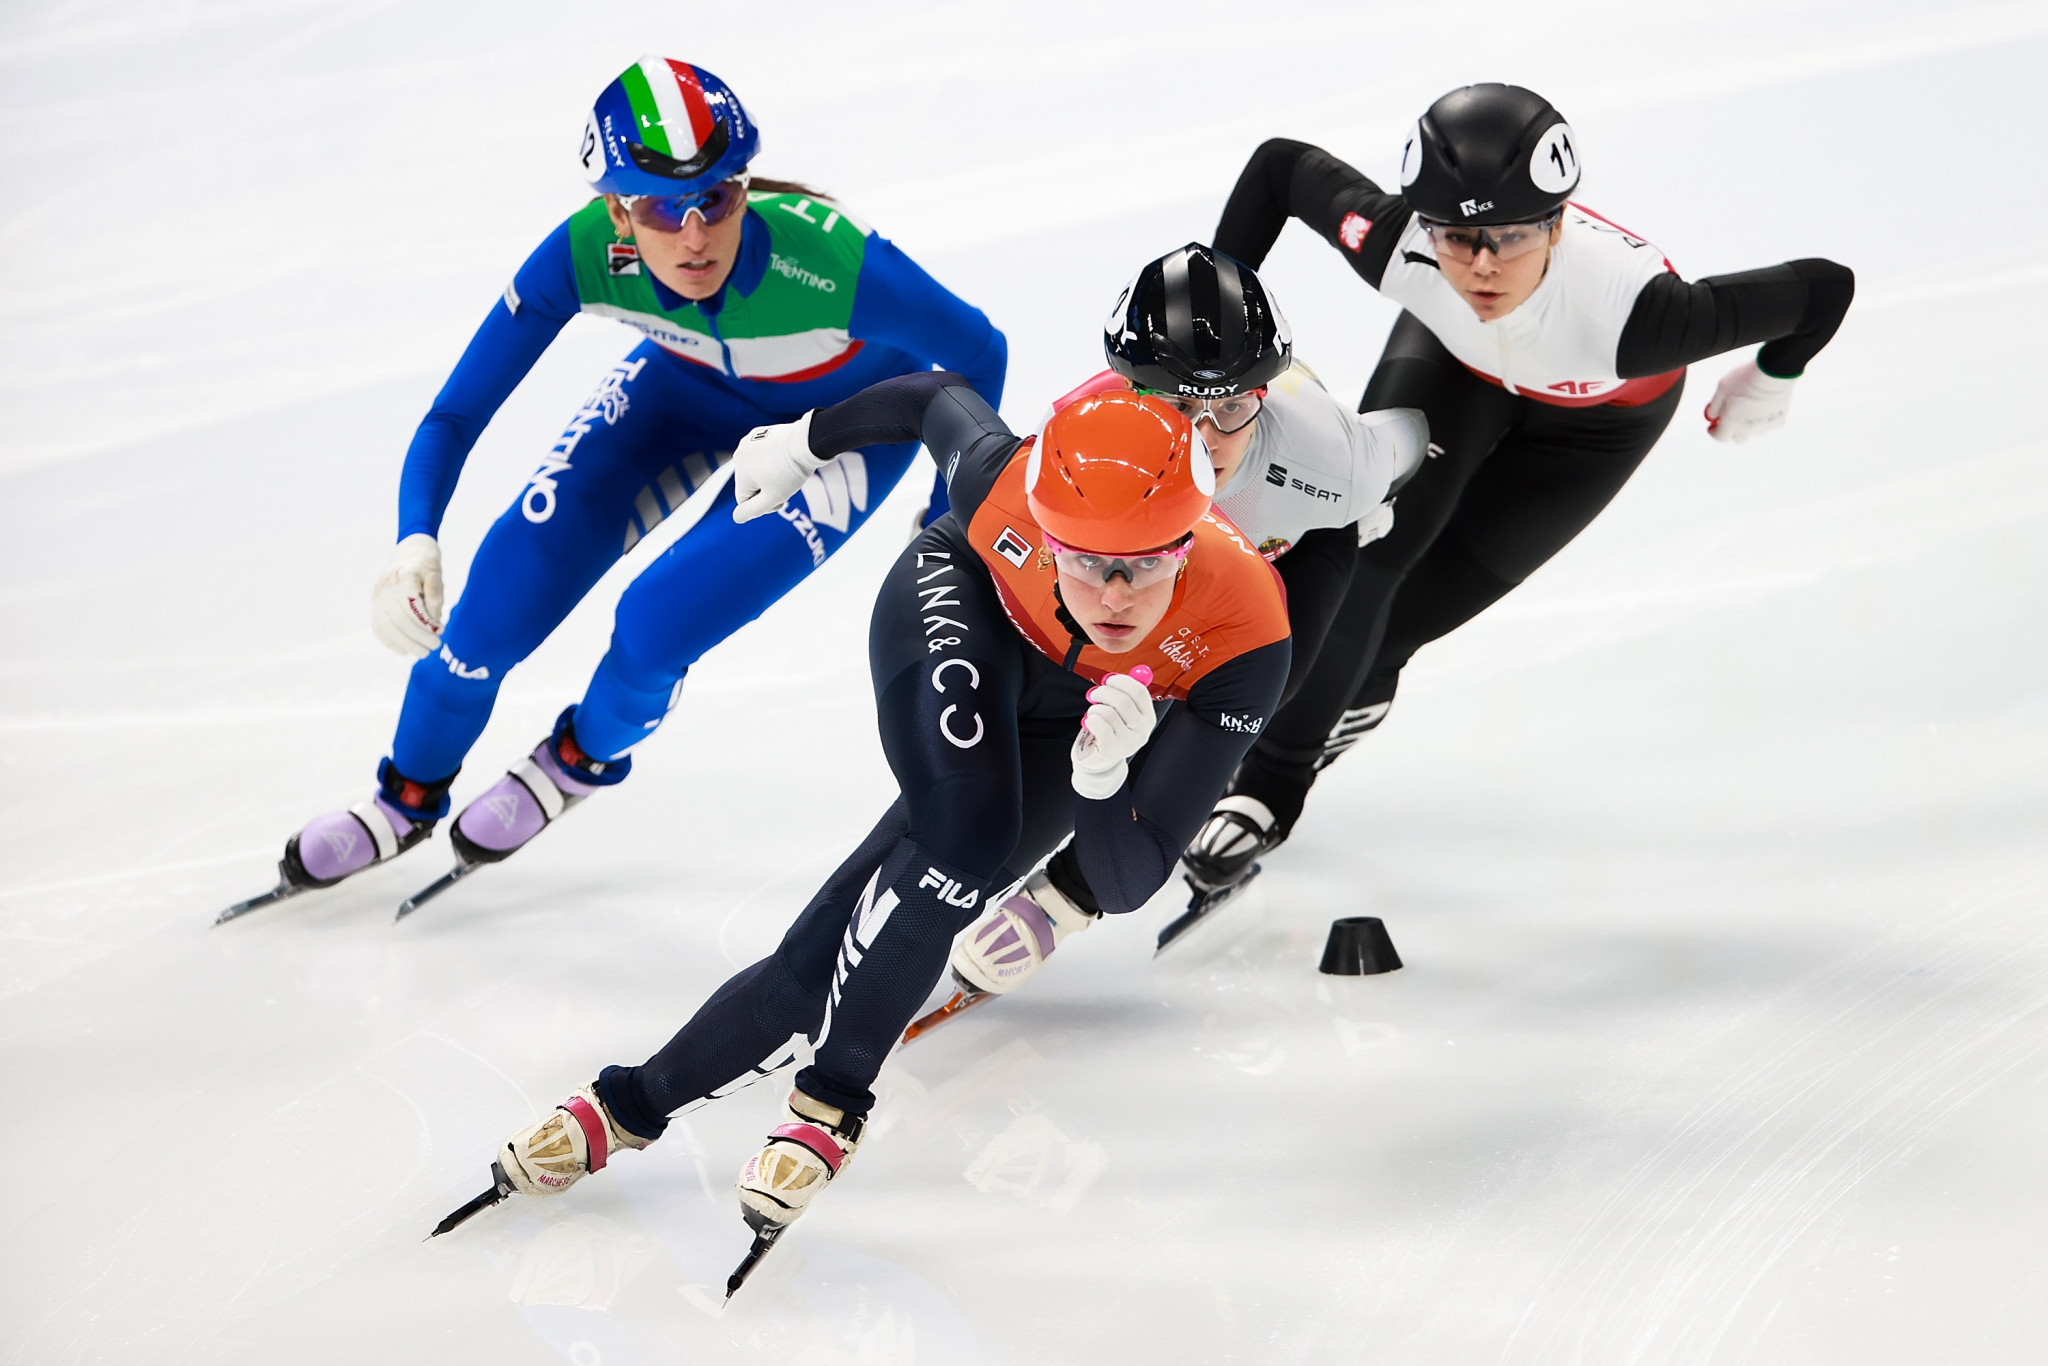 Schulting puts crash behind her to win three medals at Beijing Short Track World Cup